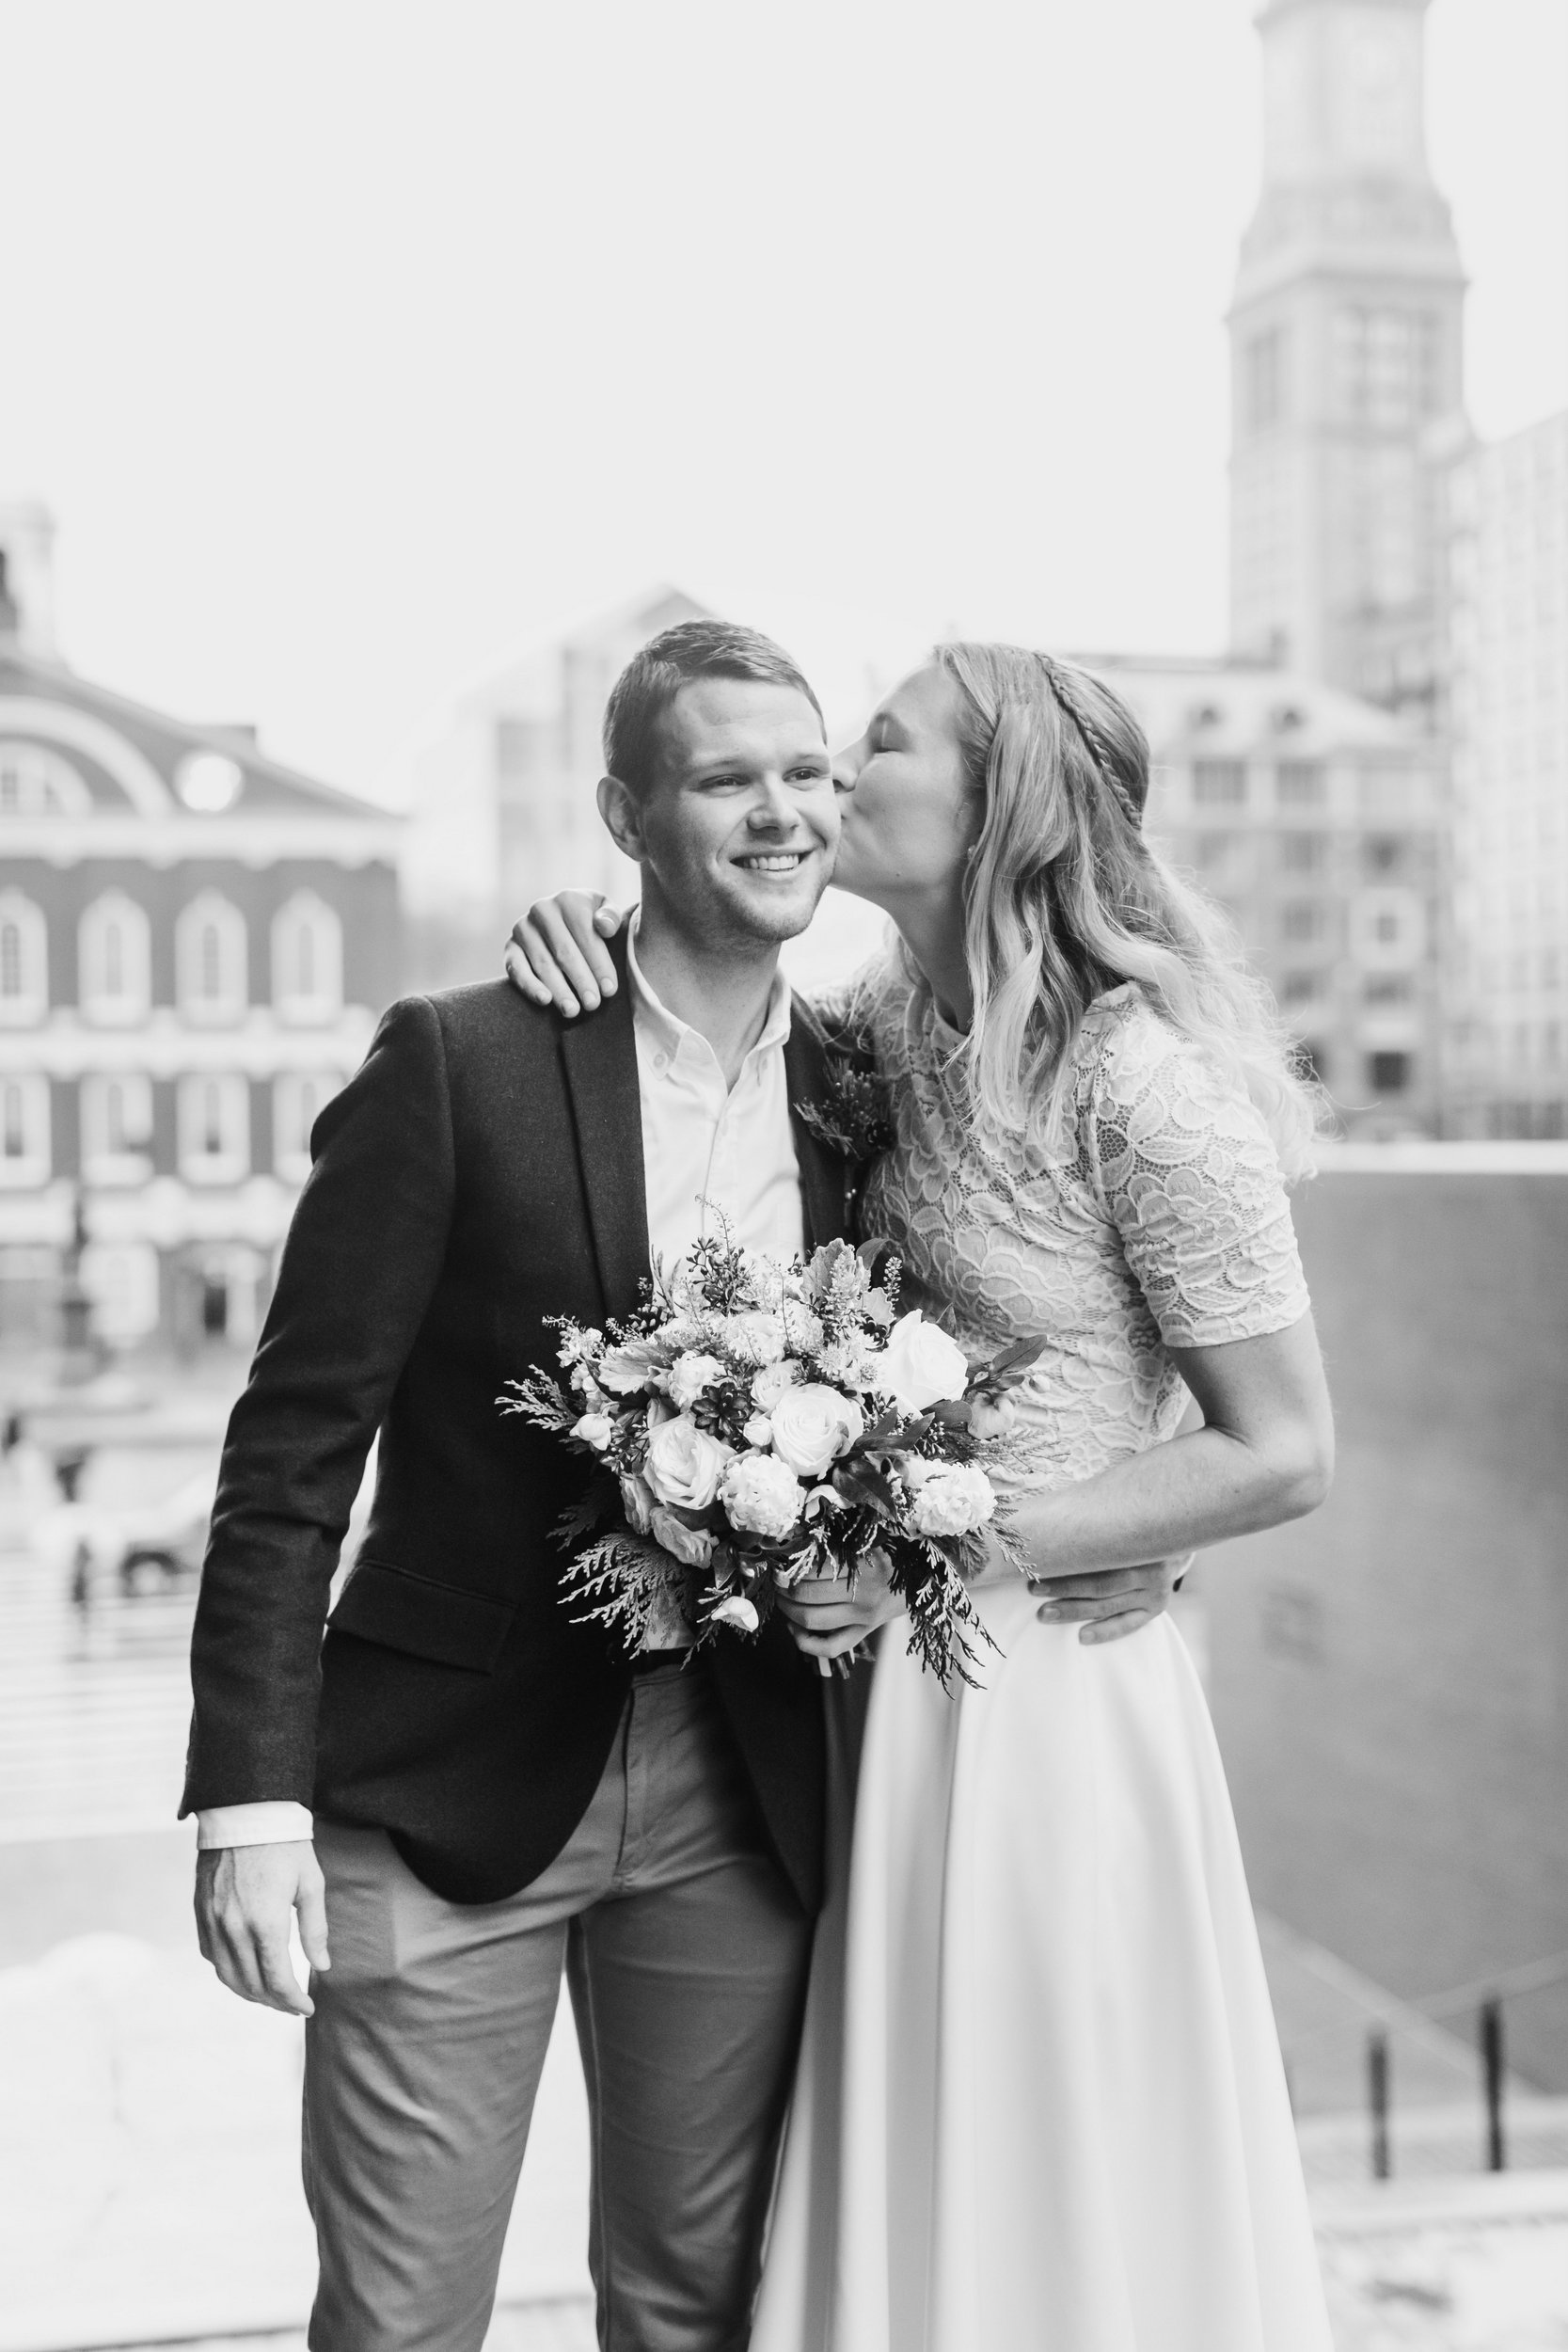 Boston-City-Hall-Wedding-Lena-Mirisola-Samantha-Pat-Mewis-3.JPG